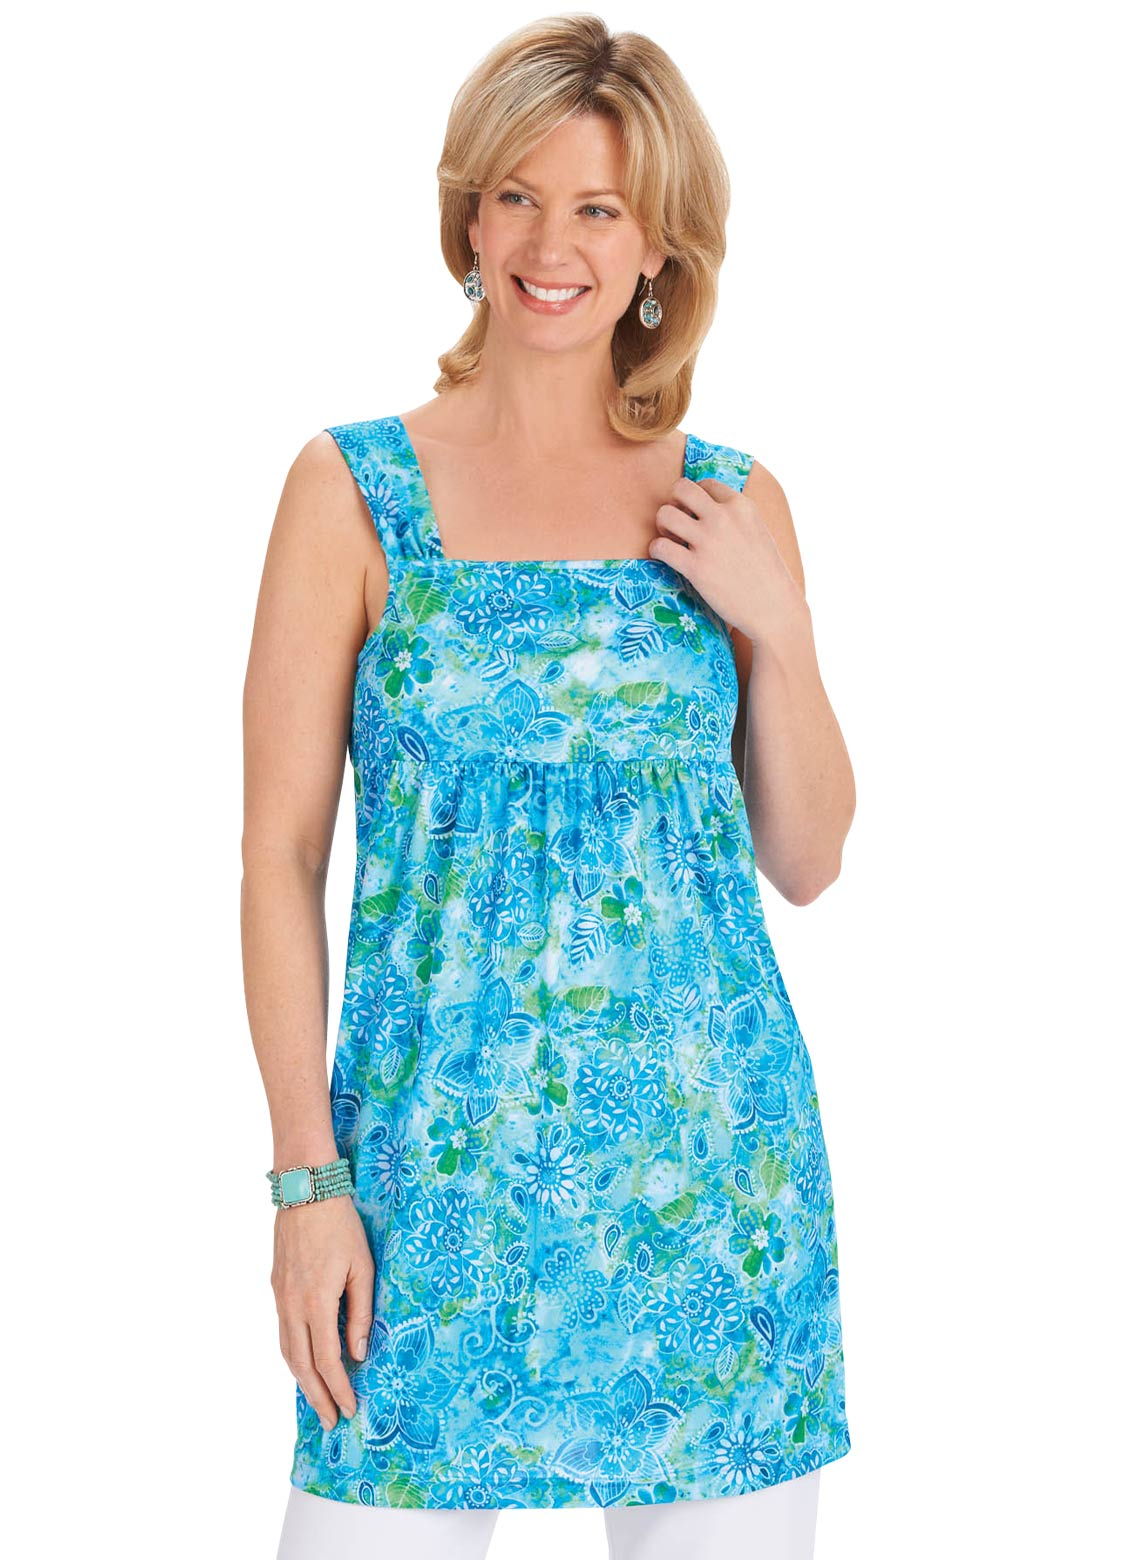 Plus Size Tunics | Tunic tops for women up to 5X from $12.99 ...